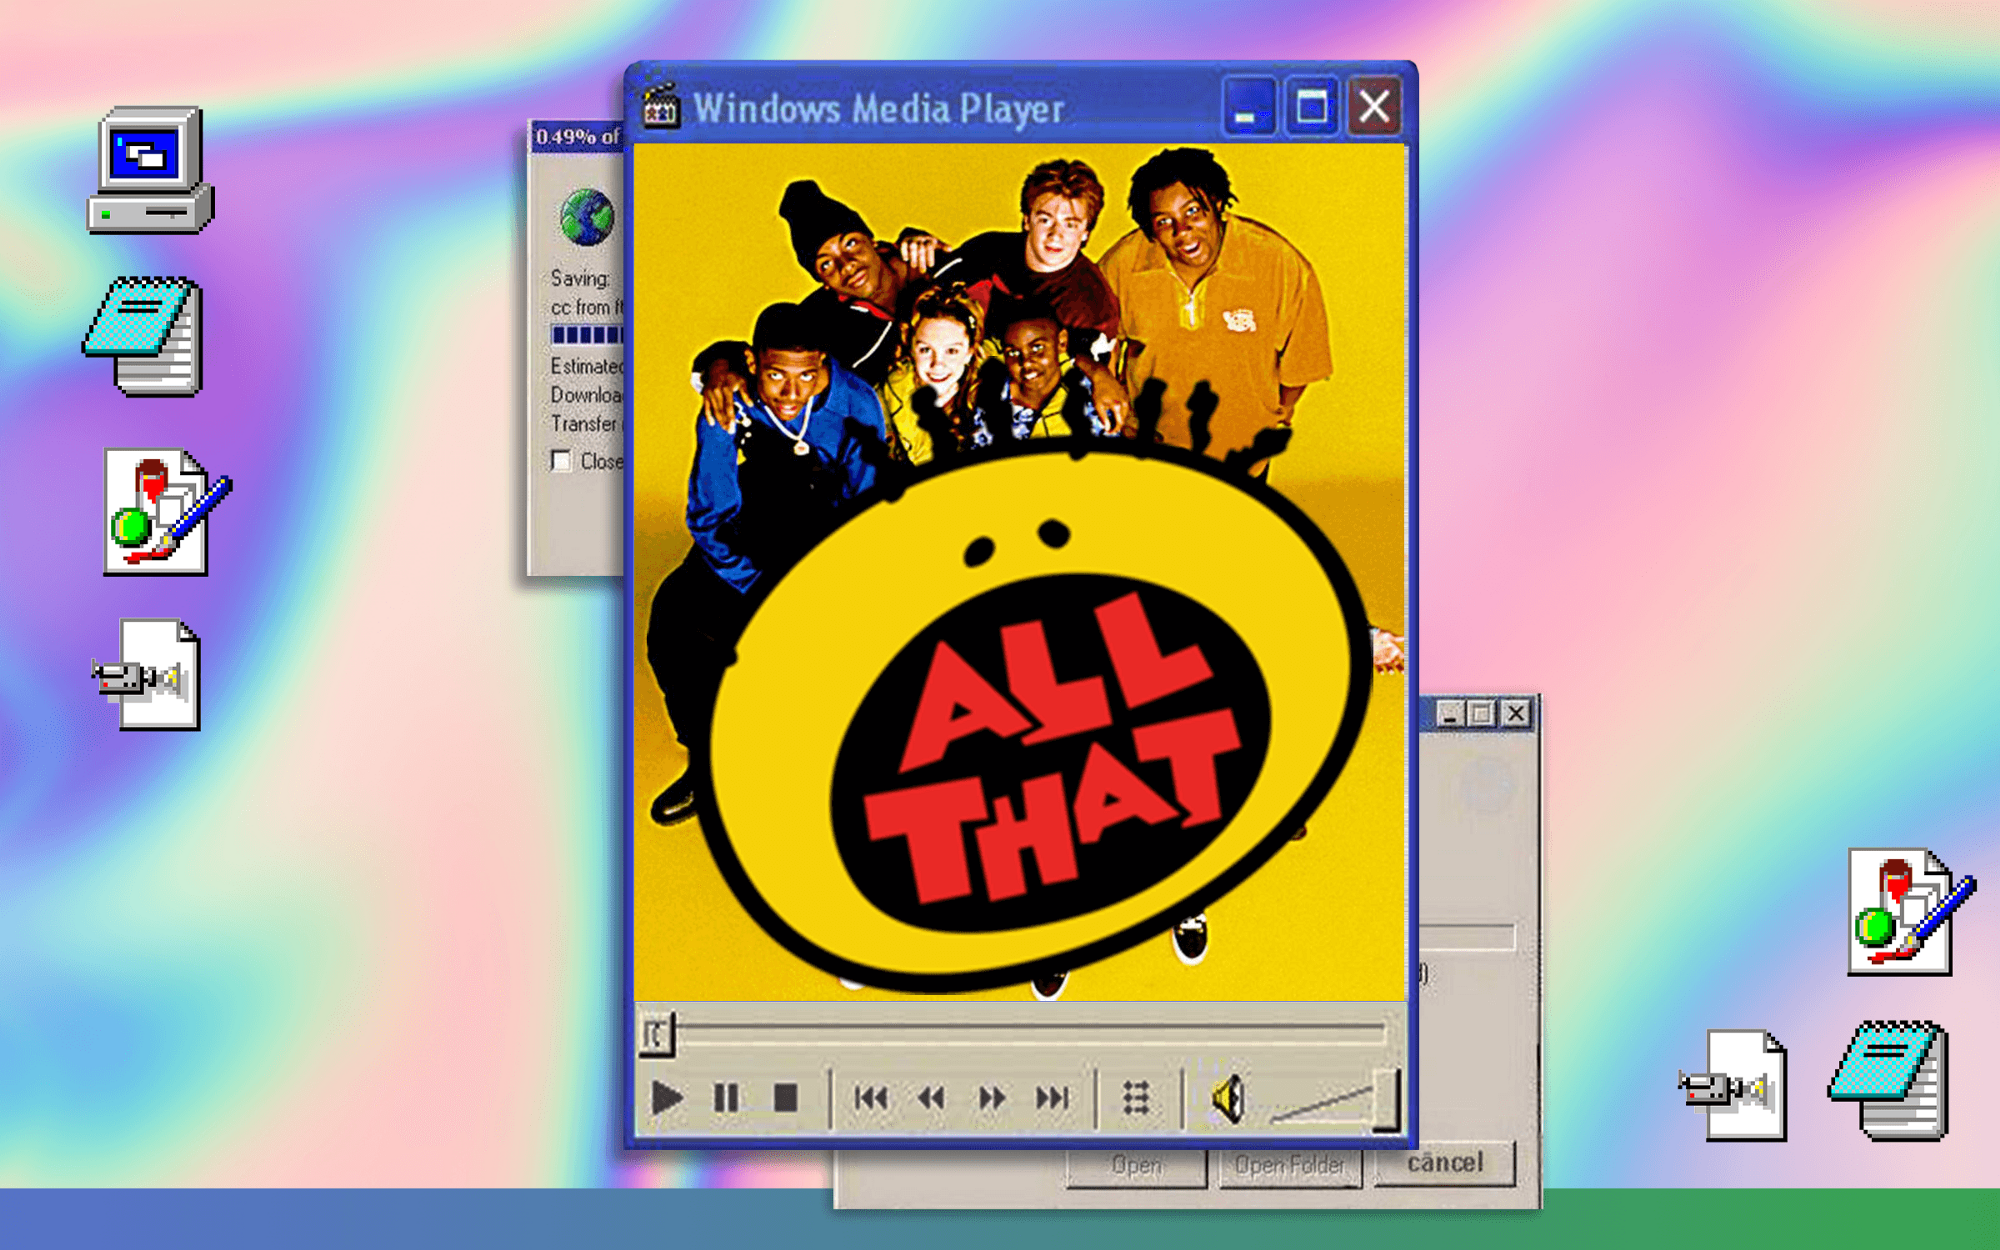 All That cast and logo on a Windows 95 desktop with a rainbow gradient background.